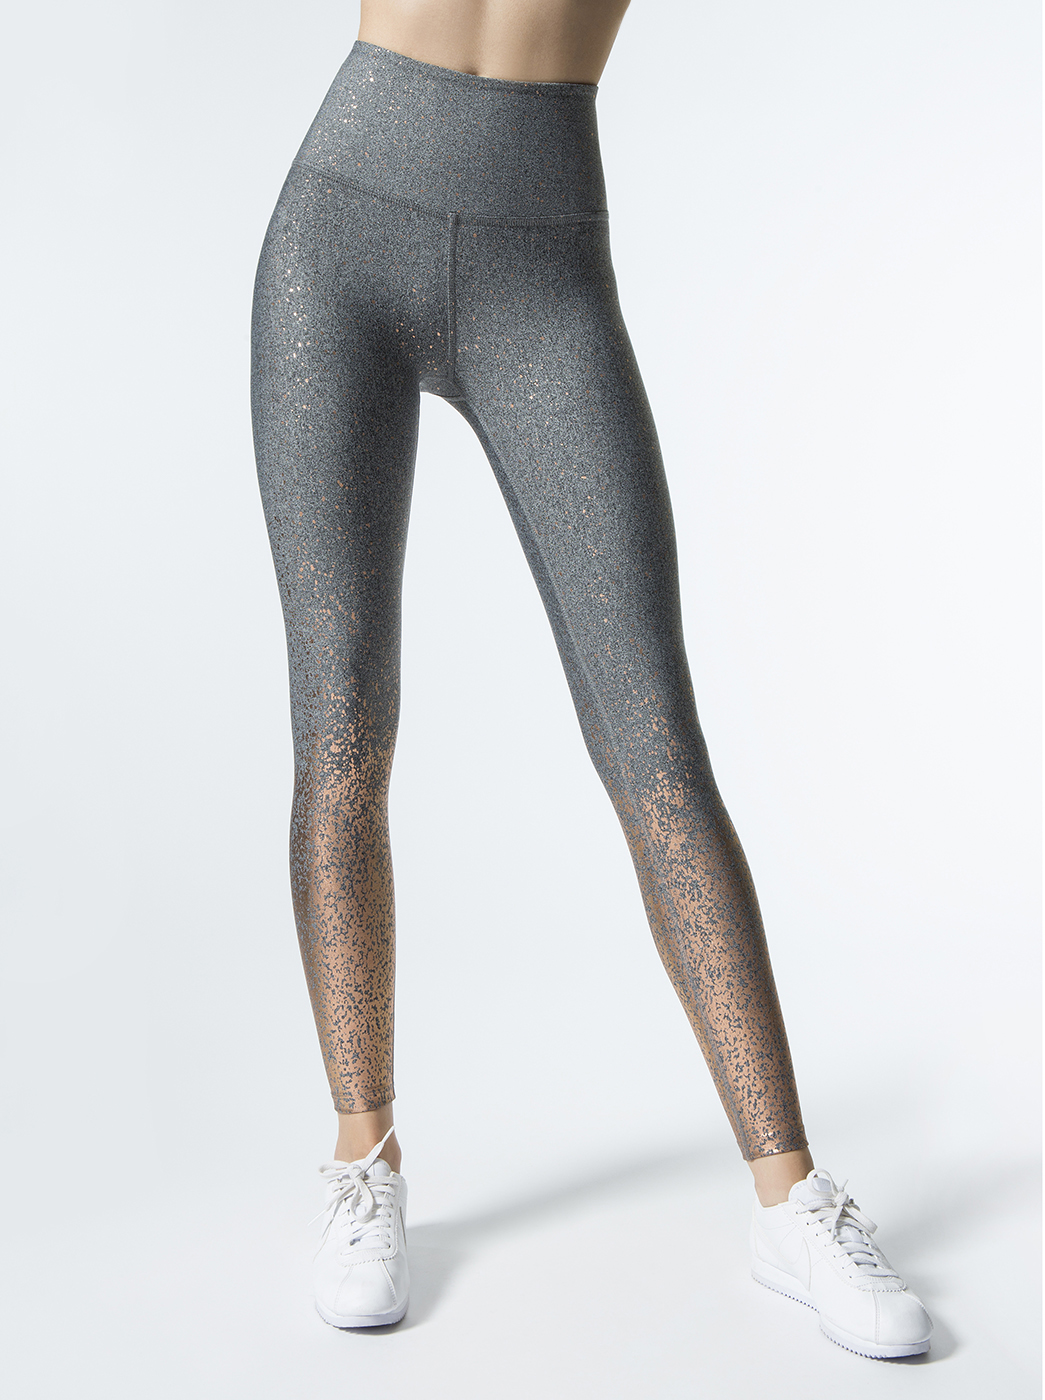 5118a2d6c8394 Alloy Ombre High Waisted Midi Leggings in Black-white Rose Gold Speckle by Beyond  Yoga from Carbon38